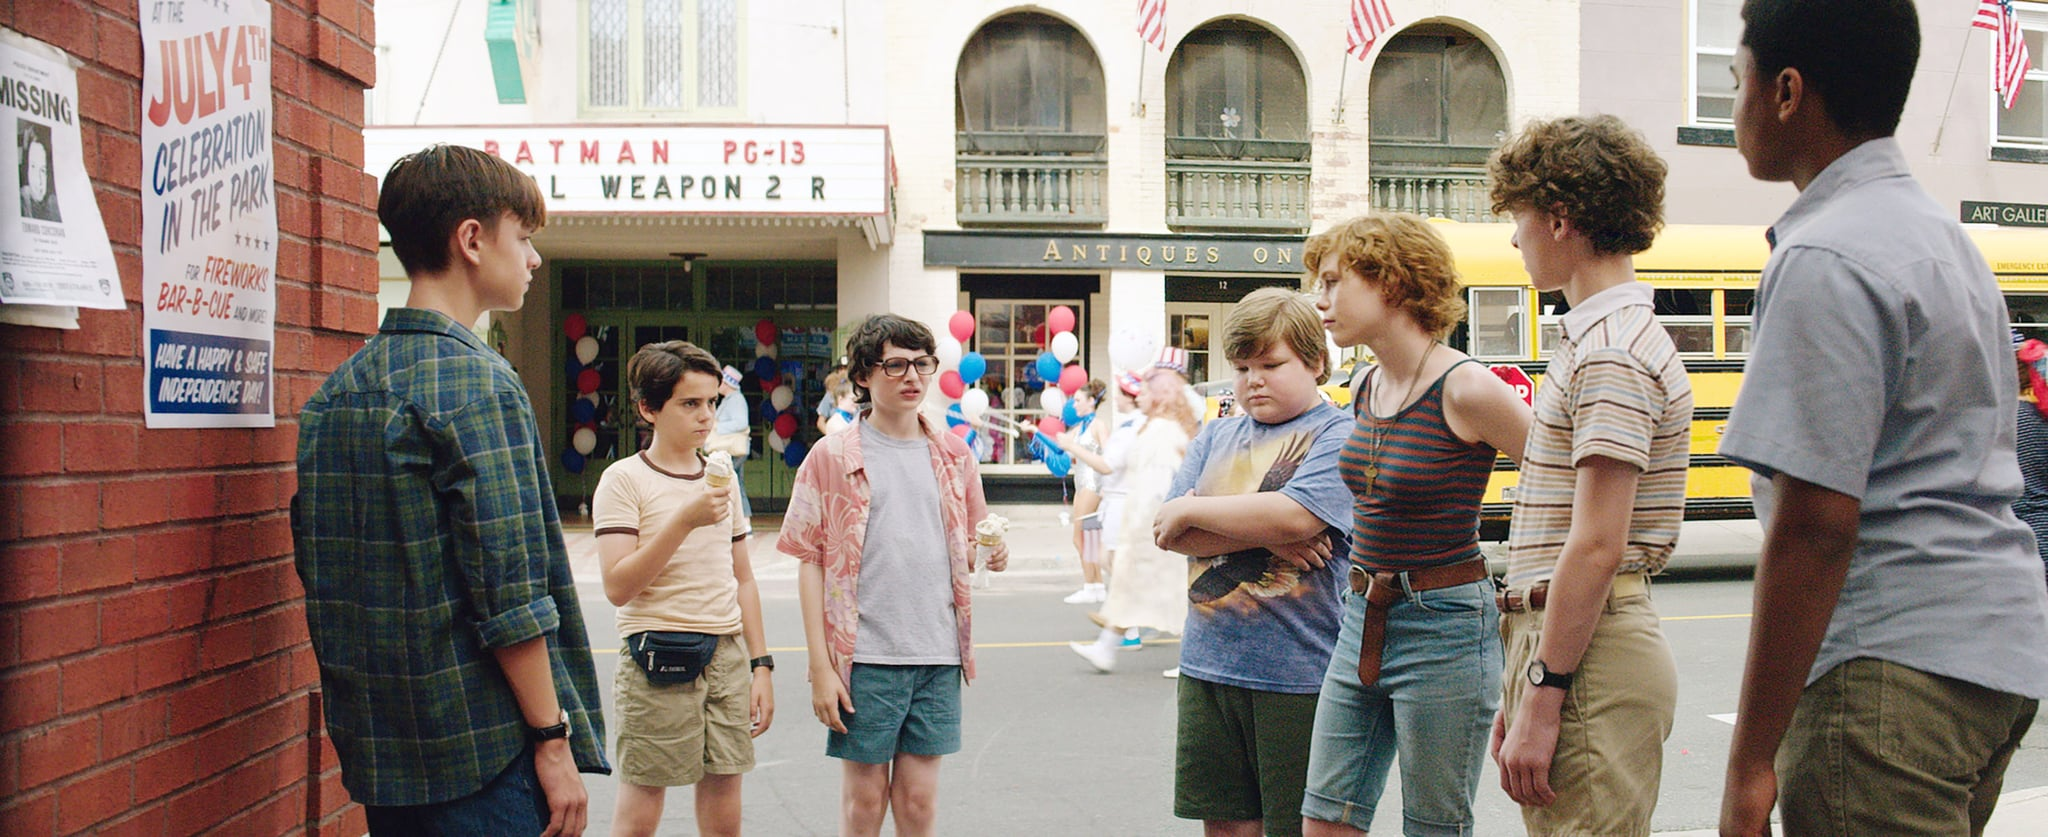 IT, from left: Jaeden Lieberher, Jack Dylan Grazer, Finn Wolfhard, Jeremy Ray Taylor, Sophia Lillis, Wyatt Oleff, Chosen Jacobs, 2017.  Warner Bros. /Courtesy Everett Collection